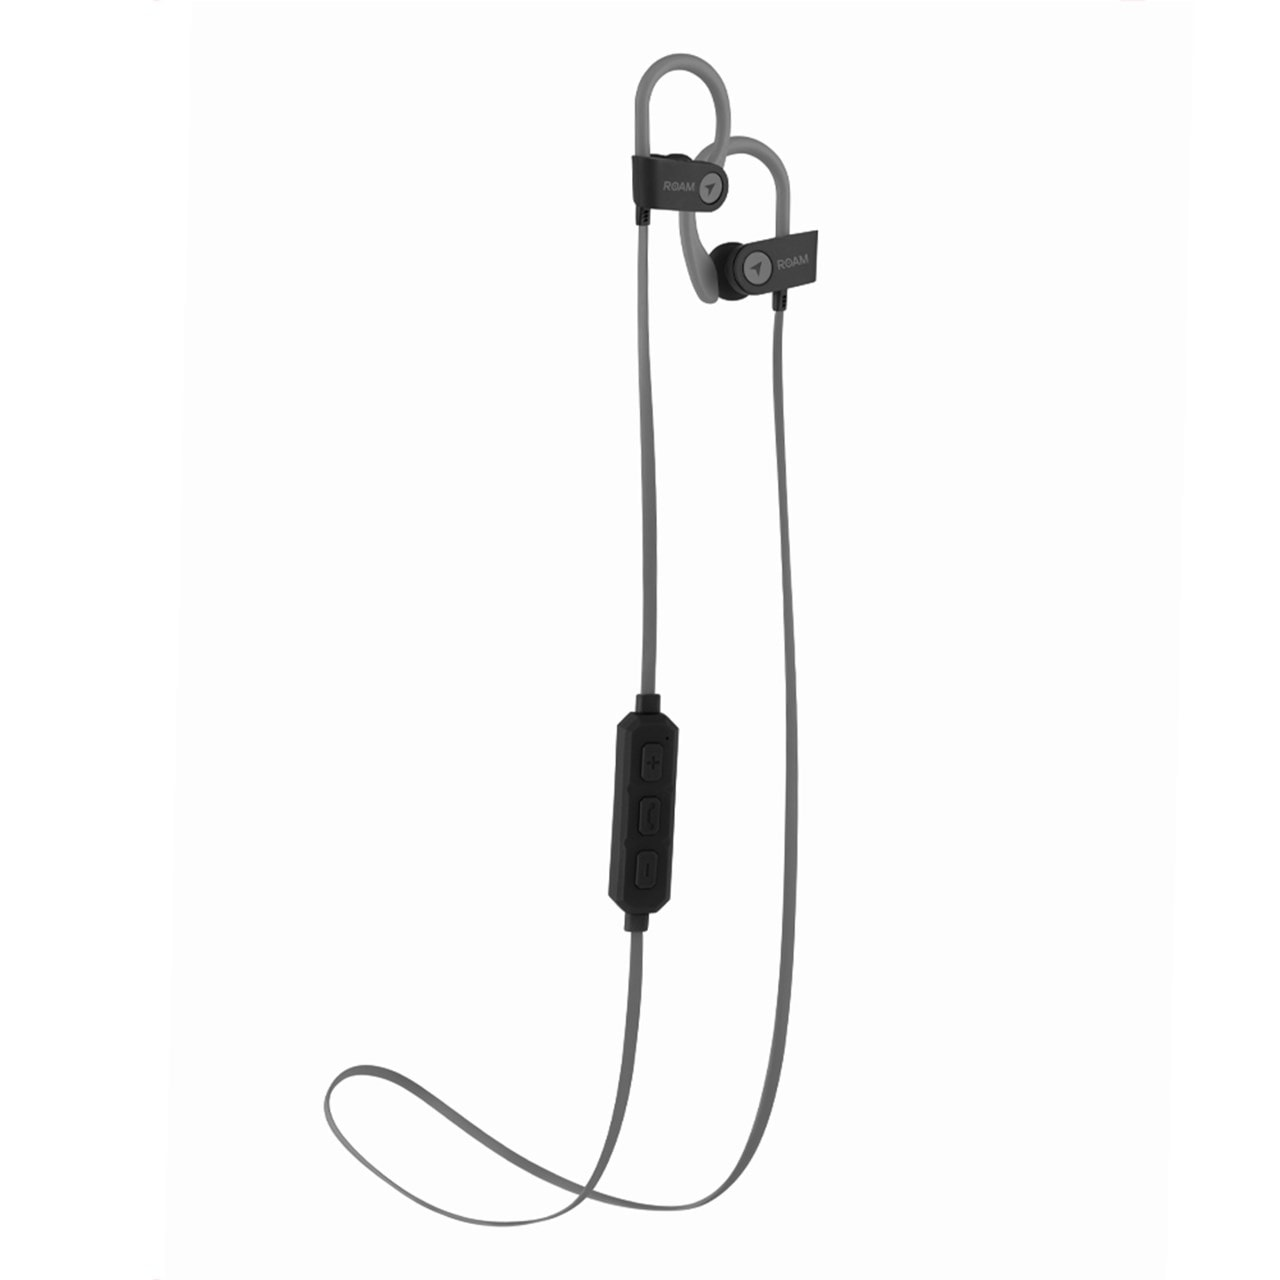 Roam Sport Ear Hook Black Bluetooth Earphones - 1